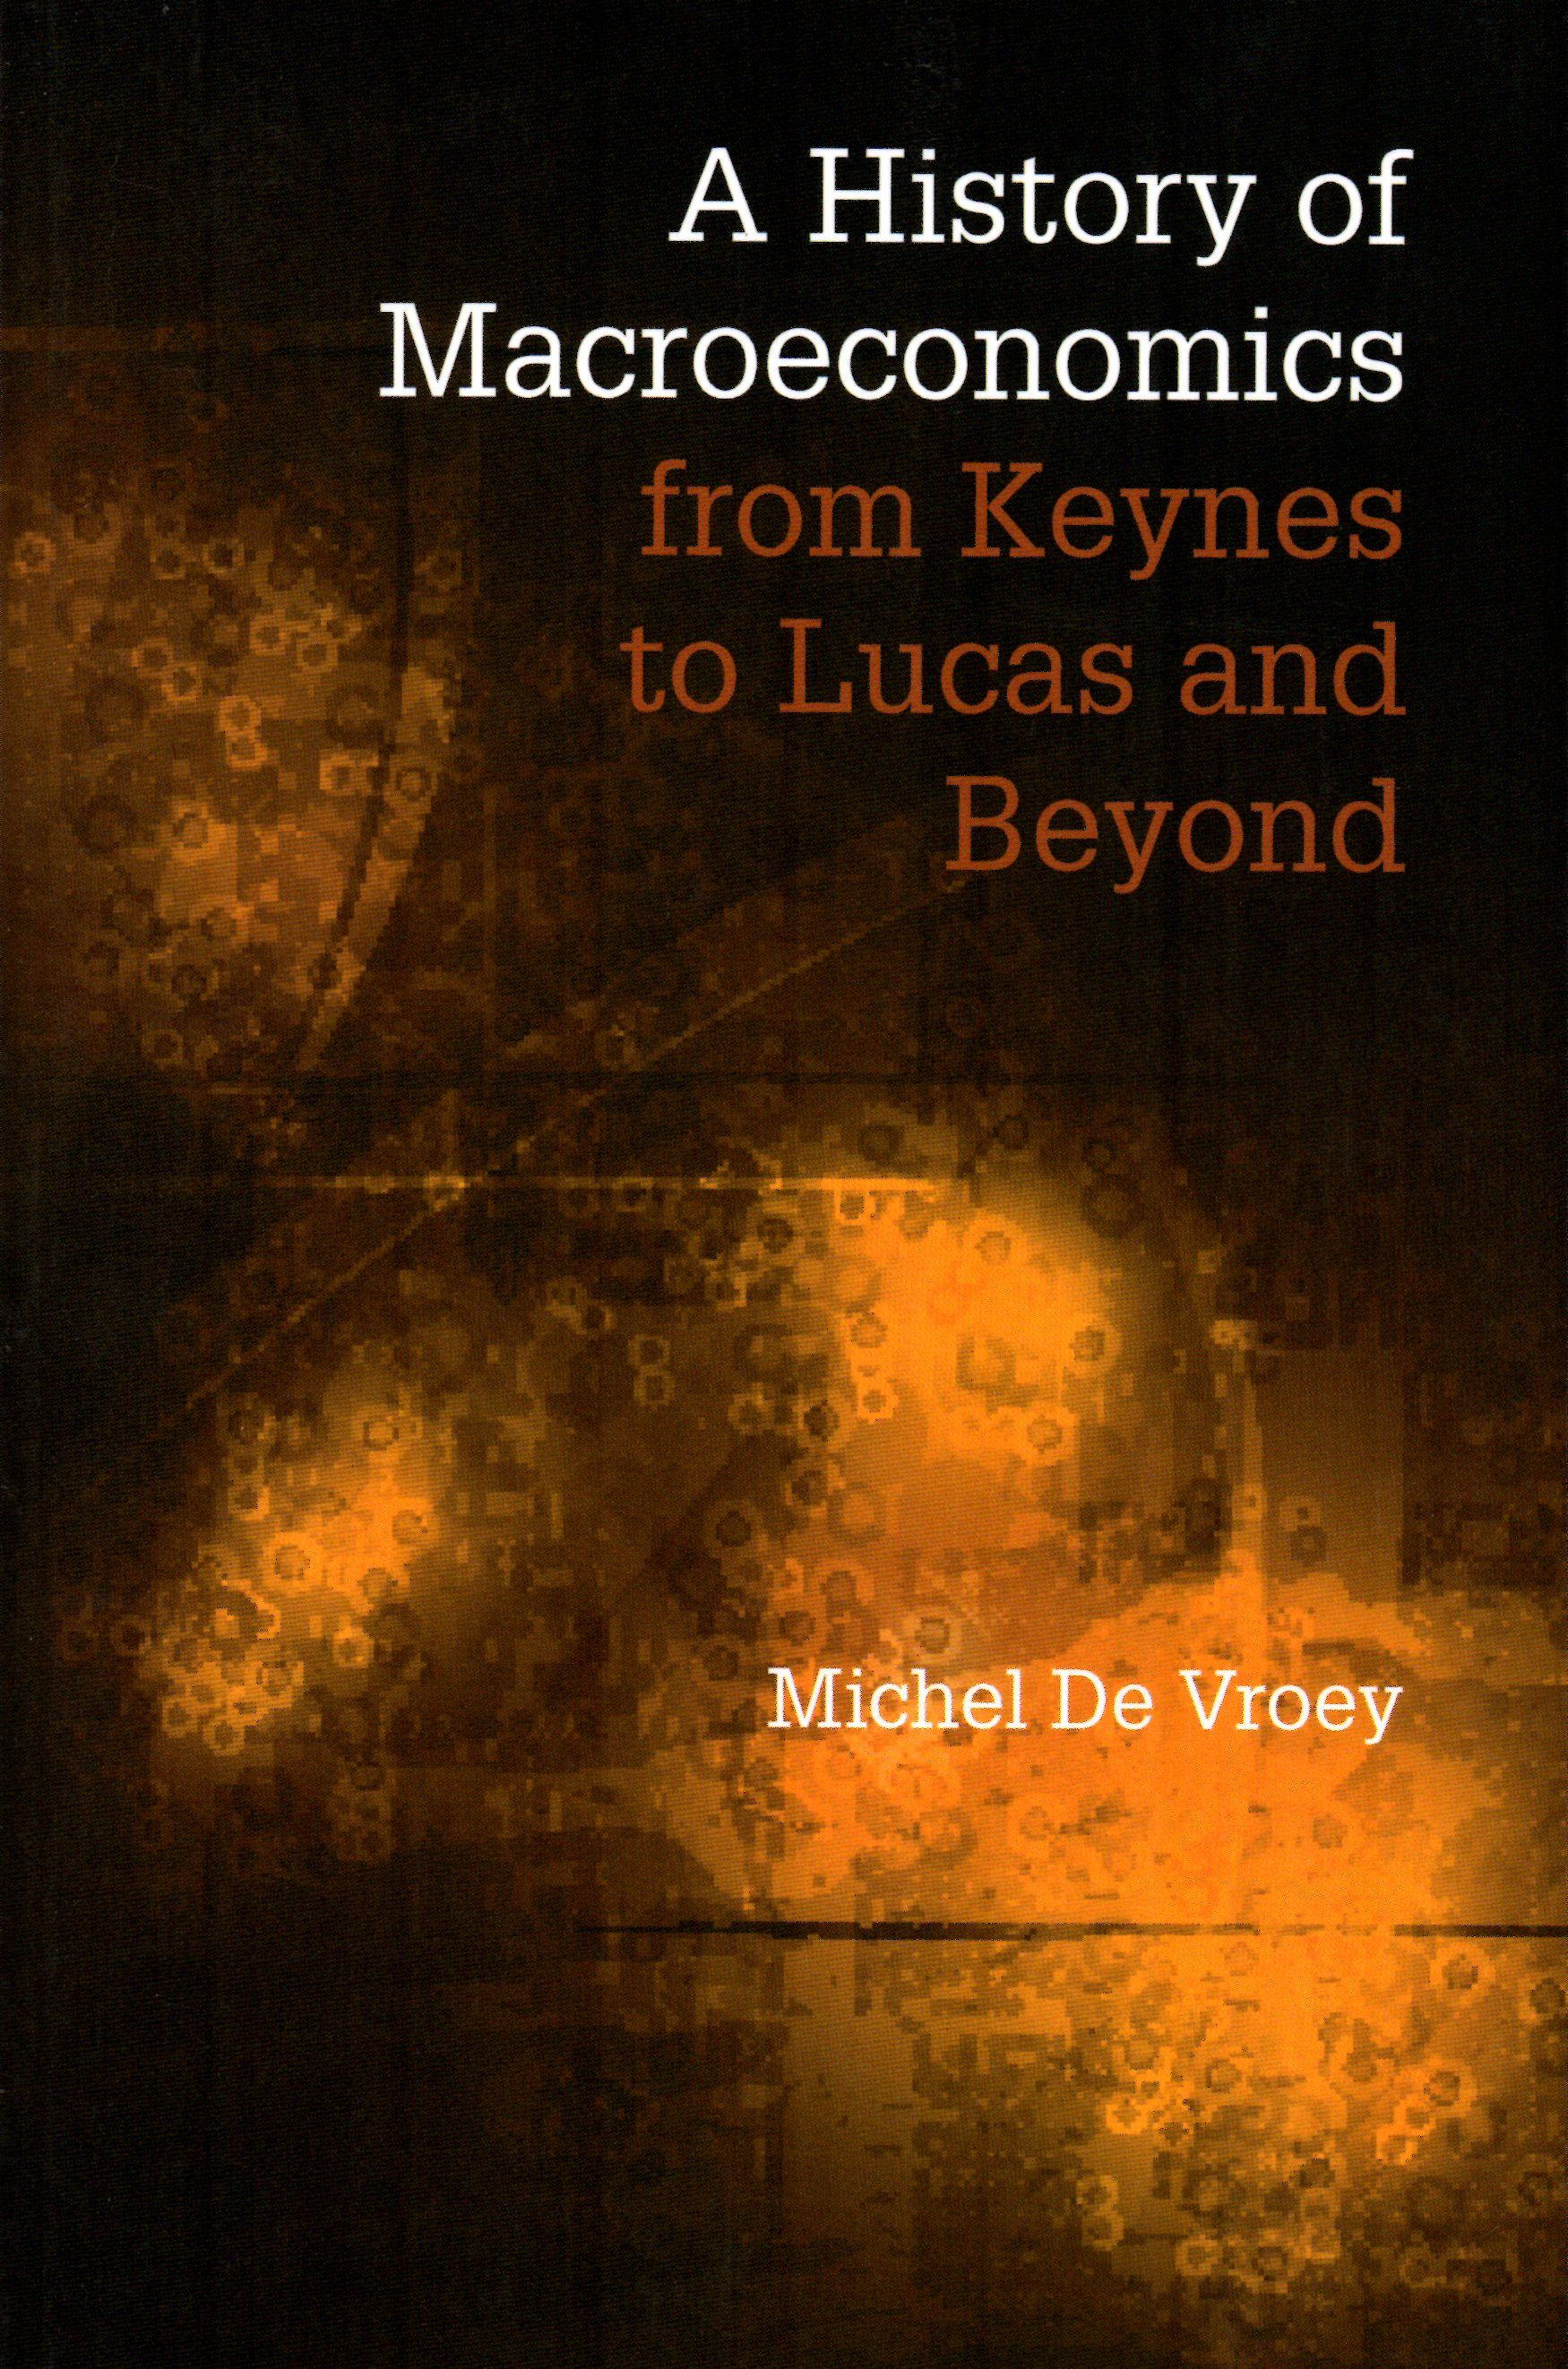 A history of macroeconomics from keynes to lucas and beyond a history of macroeconomics from keynes to lucas and beyond michel de vroey fandeluxe Choice Image